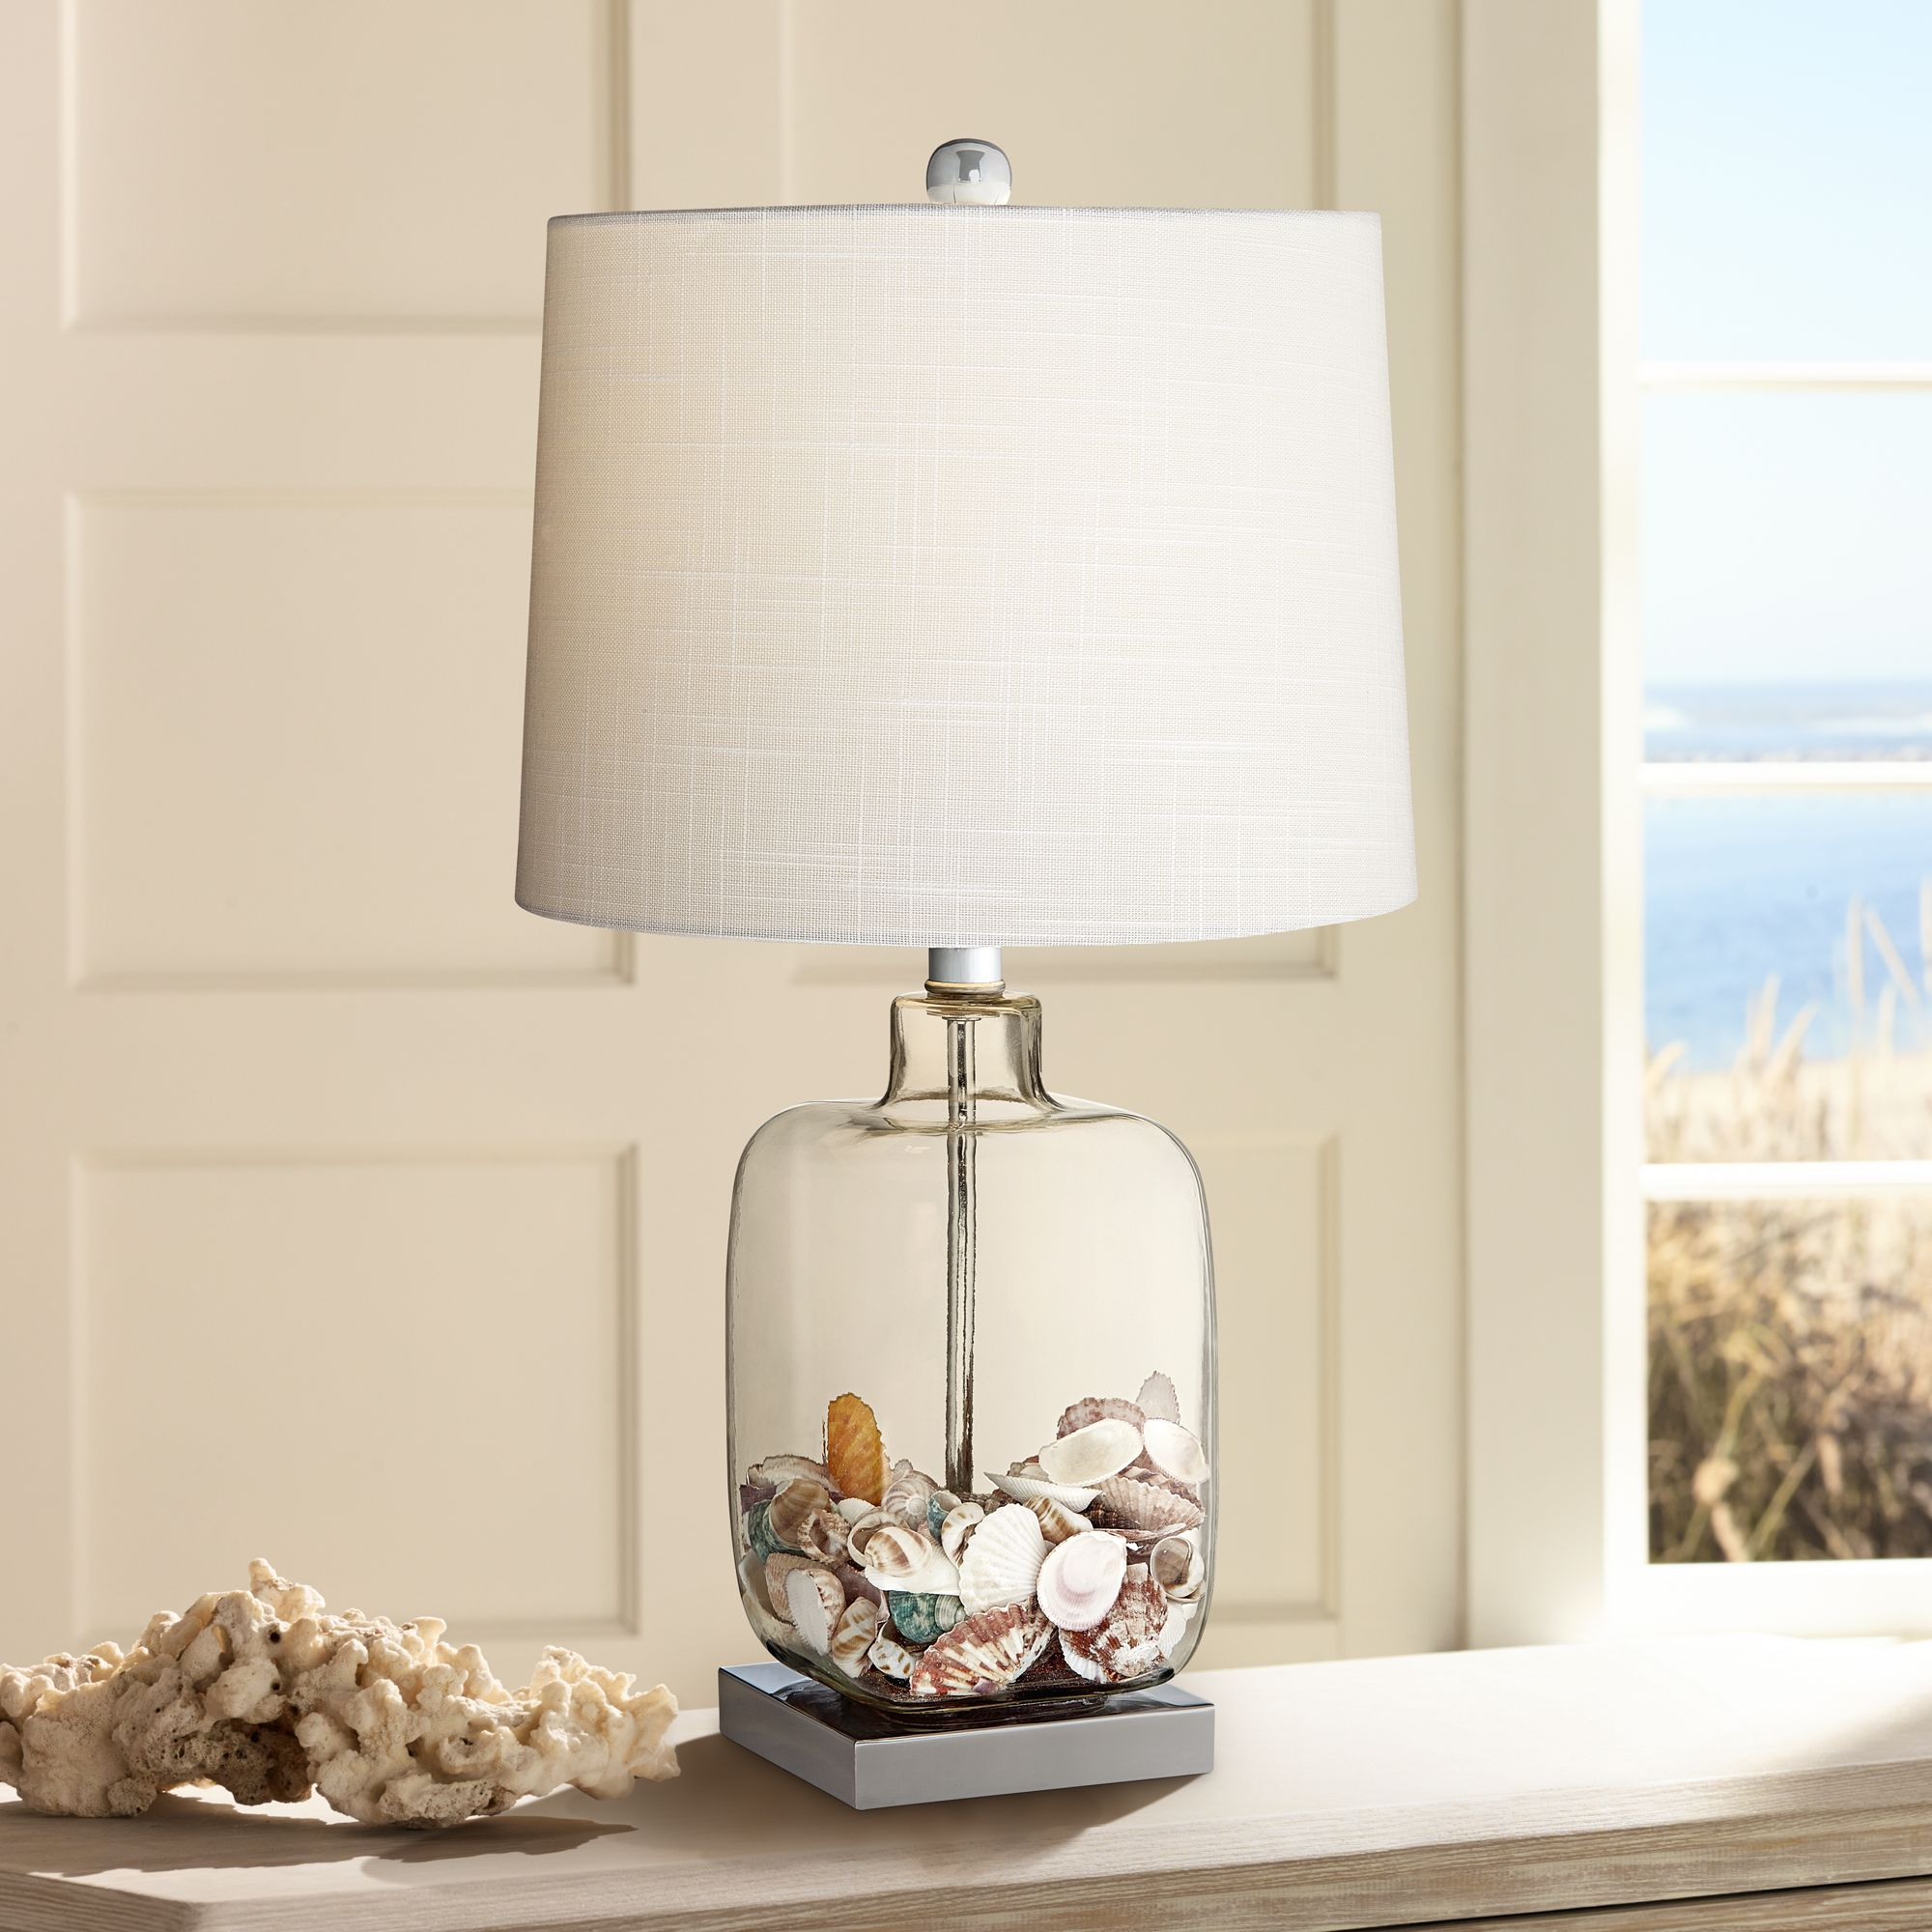 360 Lighting Coastal Accent Table Lamp Clear Glass Fillable Sea Shells  White Drum Shade For Living Room Family Bedroom Bedside   Walmart.com